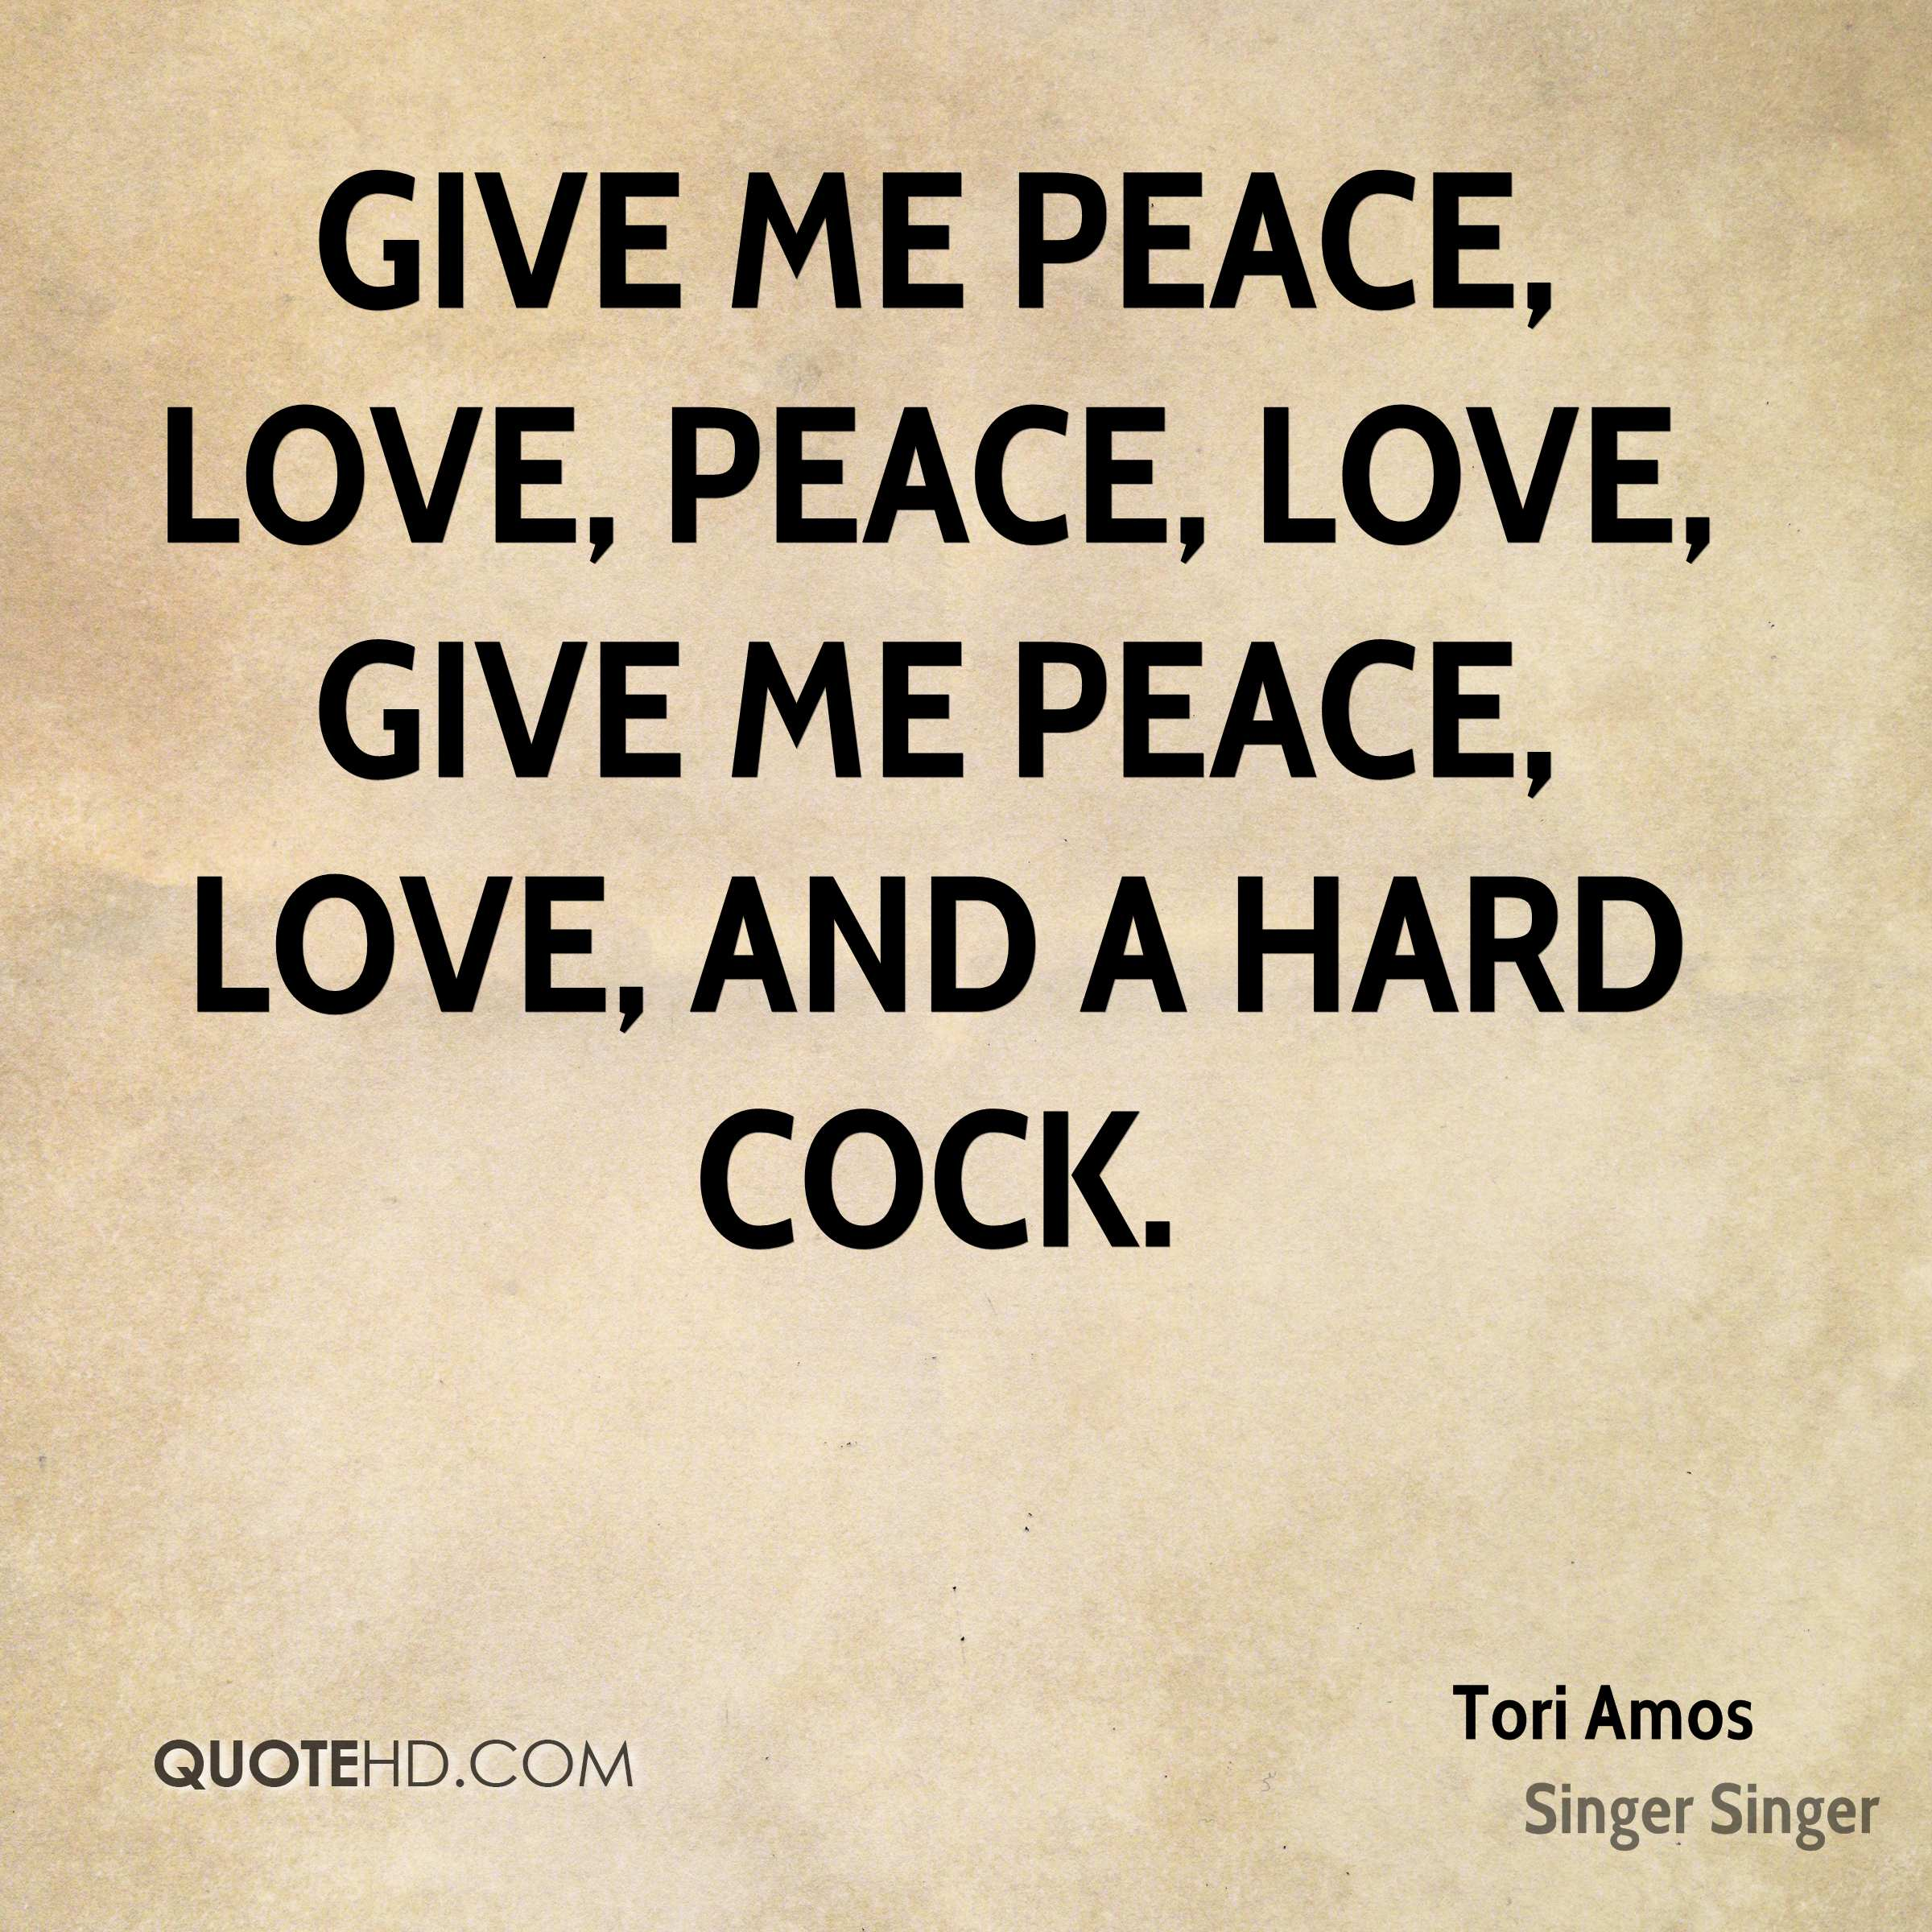 Quotes About Peace And Love Tori Amos Quotes  Quotehd